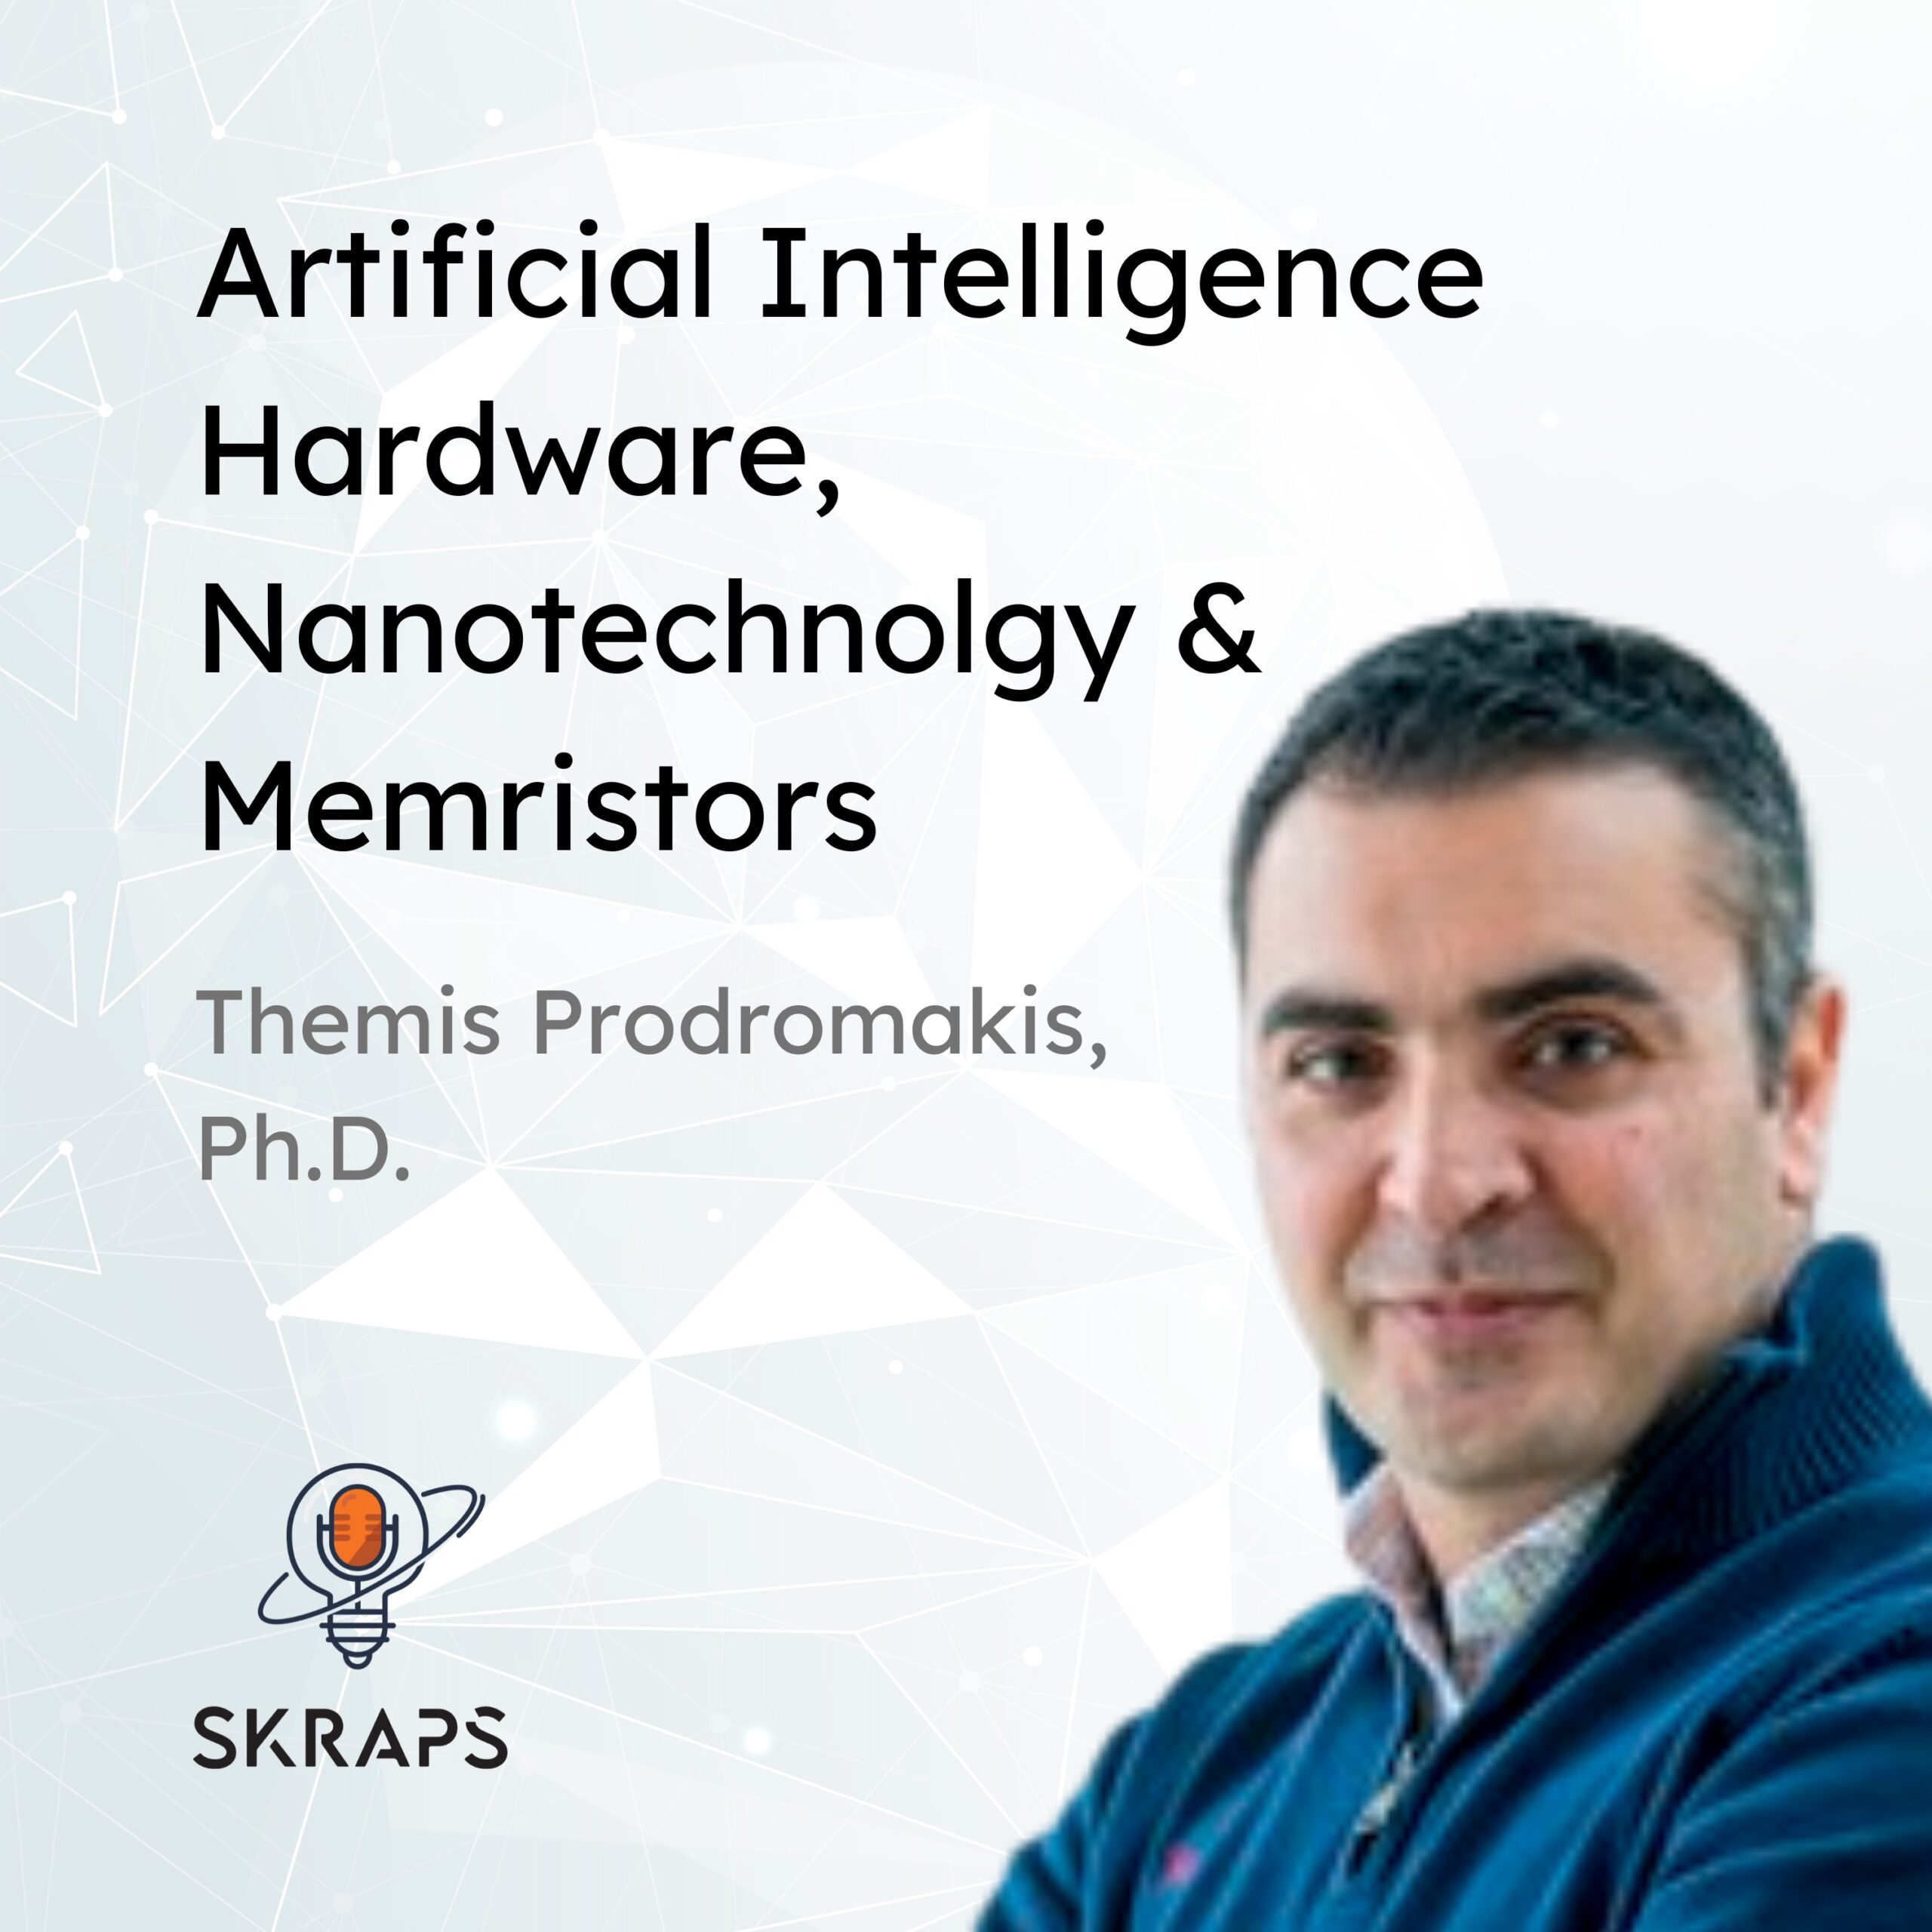 Your data won't leave your phone/device – Artificial Intelligence hardware, Nanotechnology and Memristors